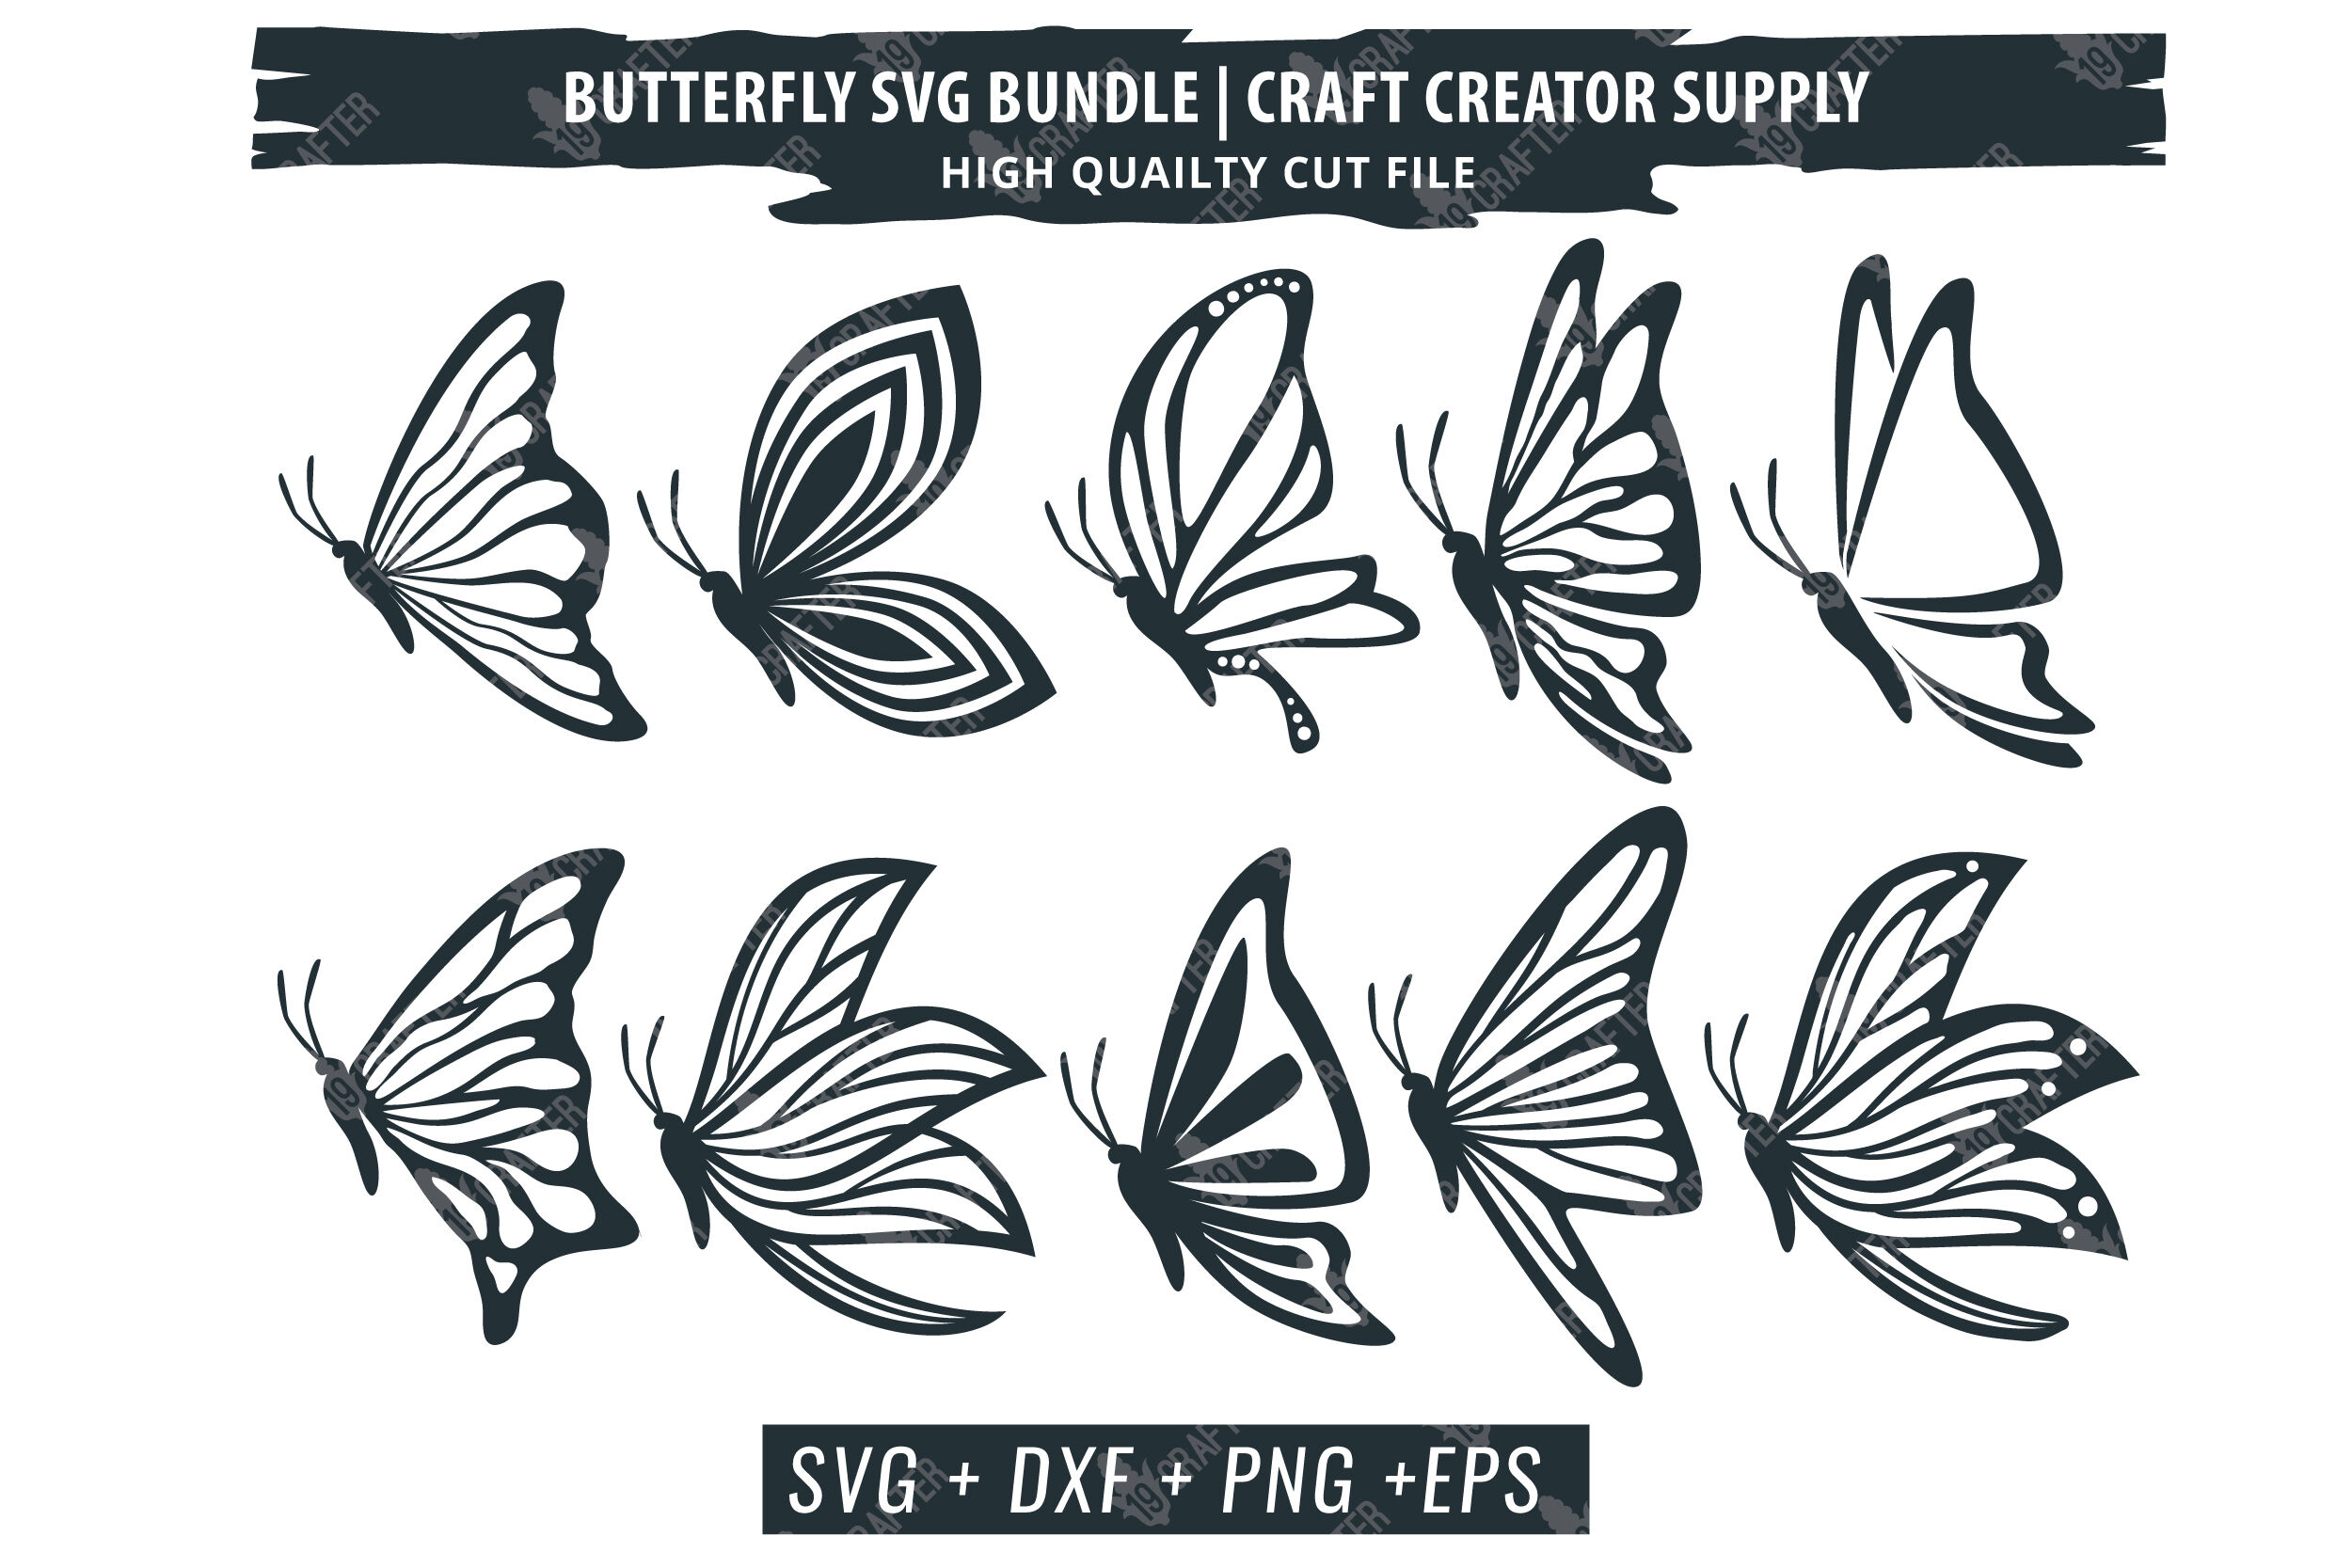 Butterfly Svg Bundle Beautiful And Detail Quality By Greatype19